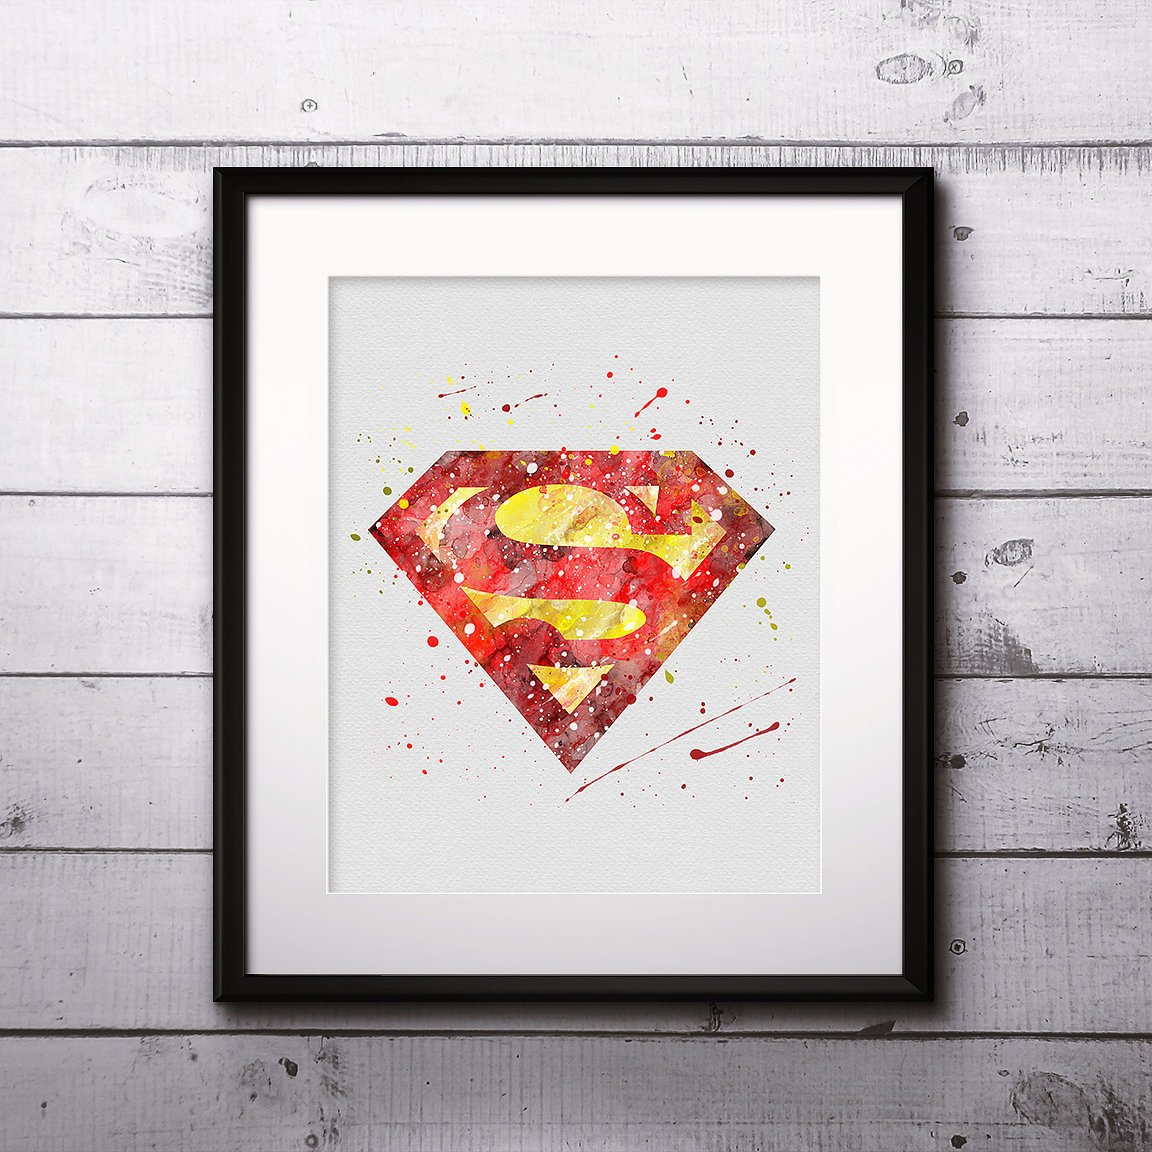 DC COMICS SUPERHERO SUPERMAN POSTER PICTURE PRINT Sizes A5 to A0 **NEW**